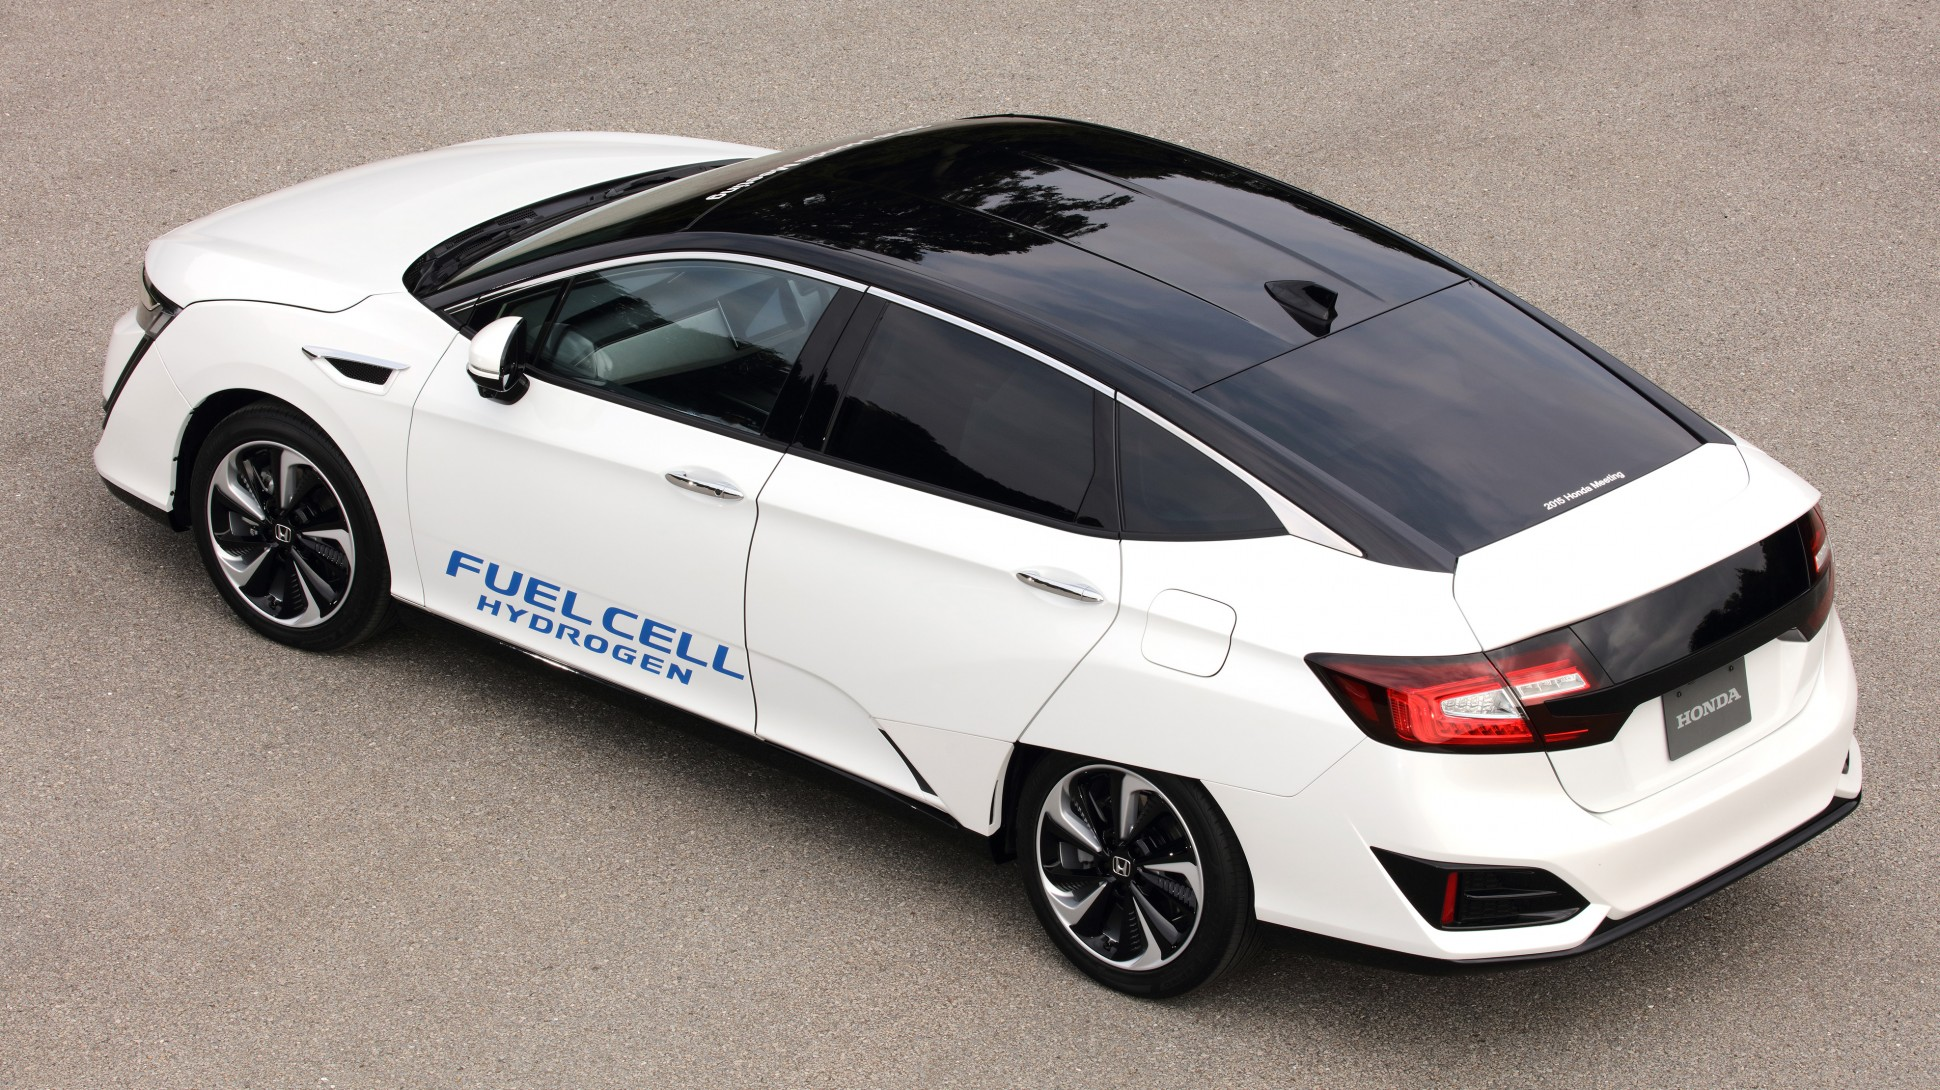 Hondas New Hydrogen Powered Vehicle Feels More Like A Real Car